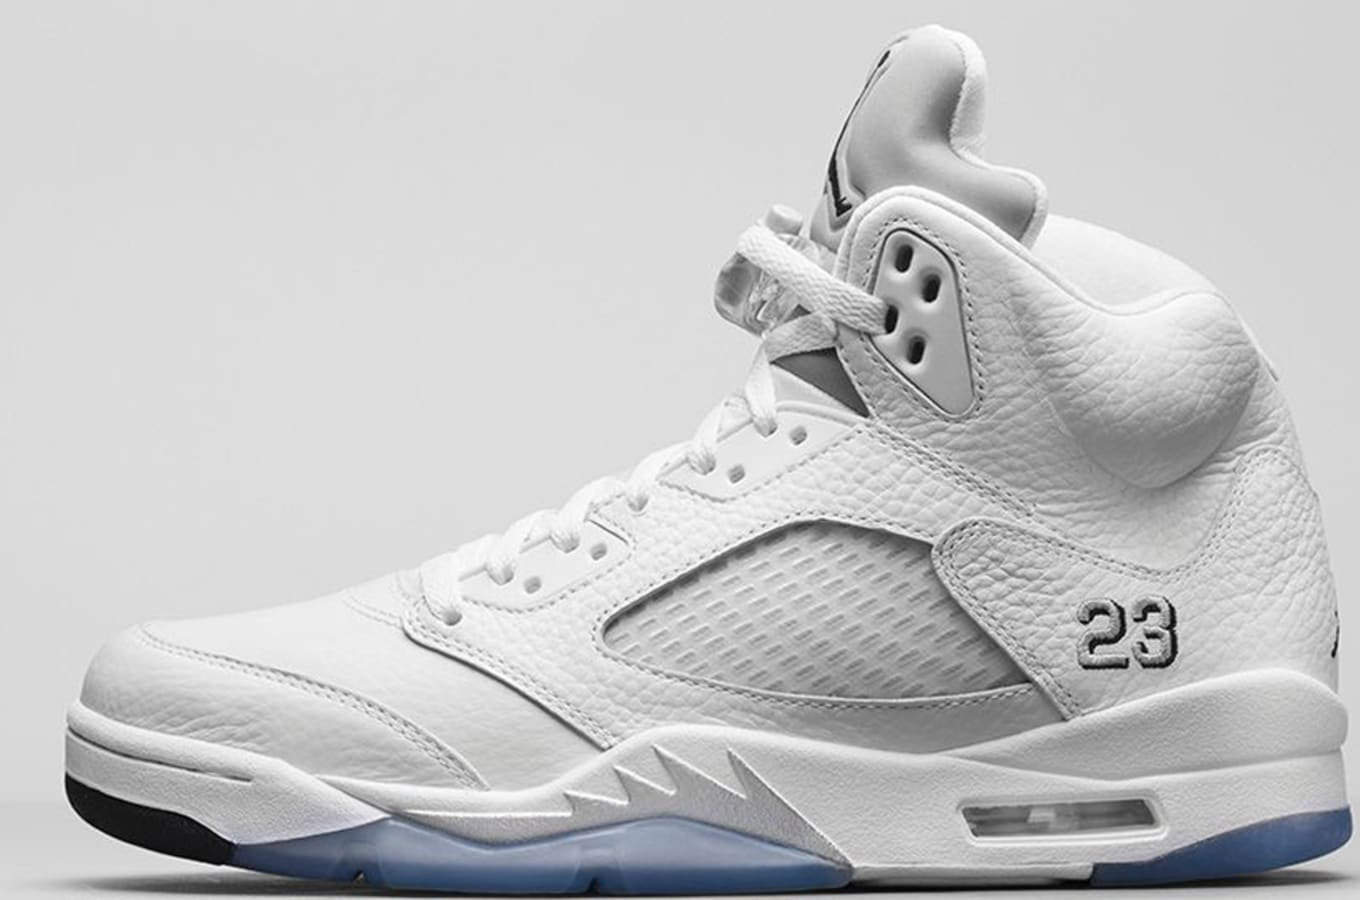 89df05ca357 Air Jordan 5: The Definitive Guide to Colorways | Sole Collector